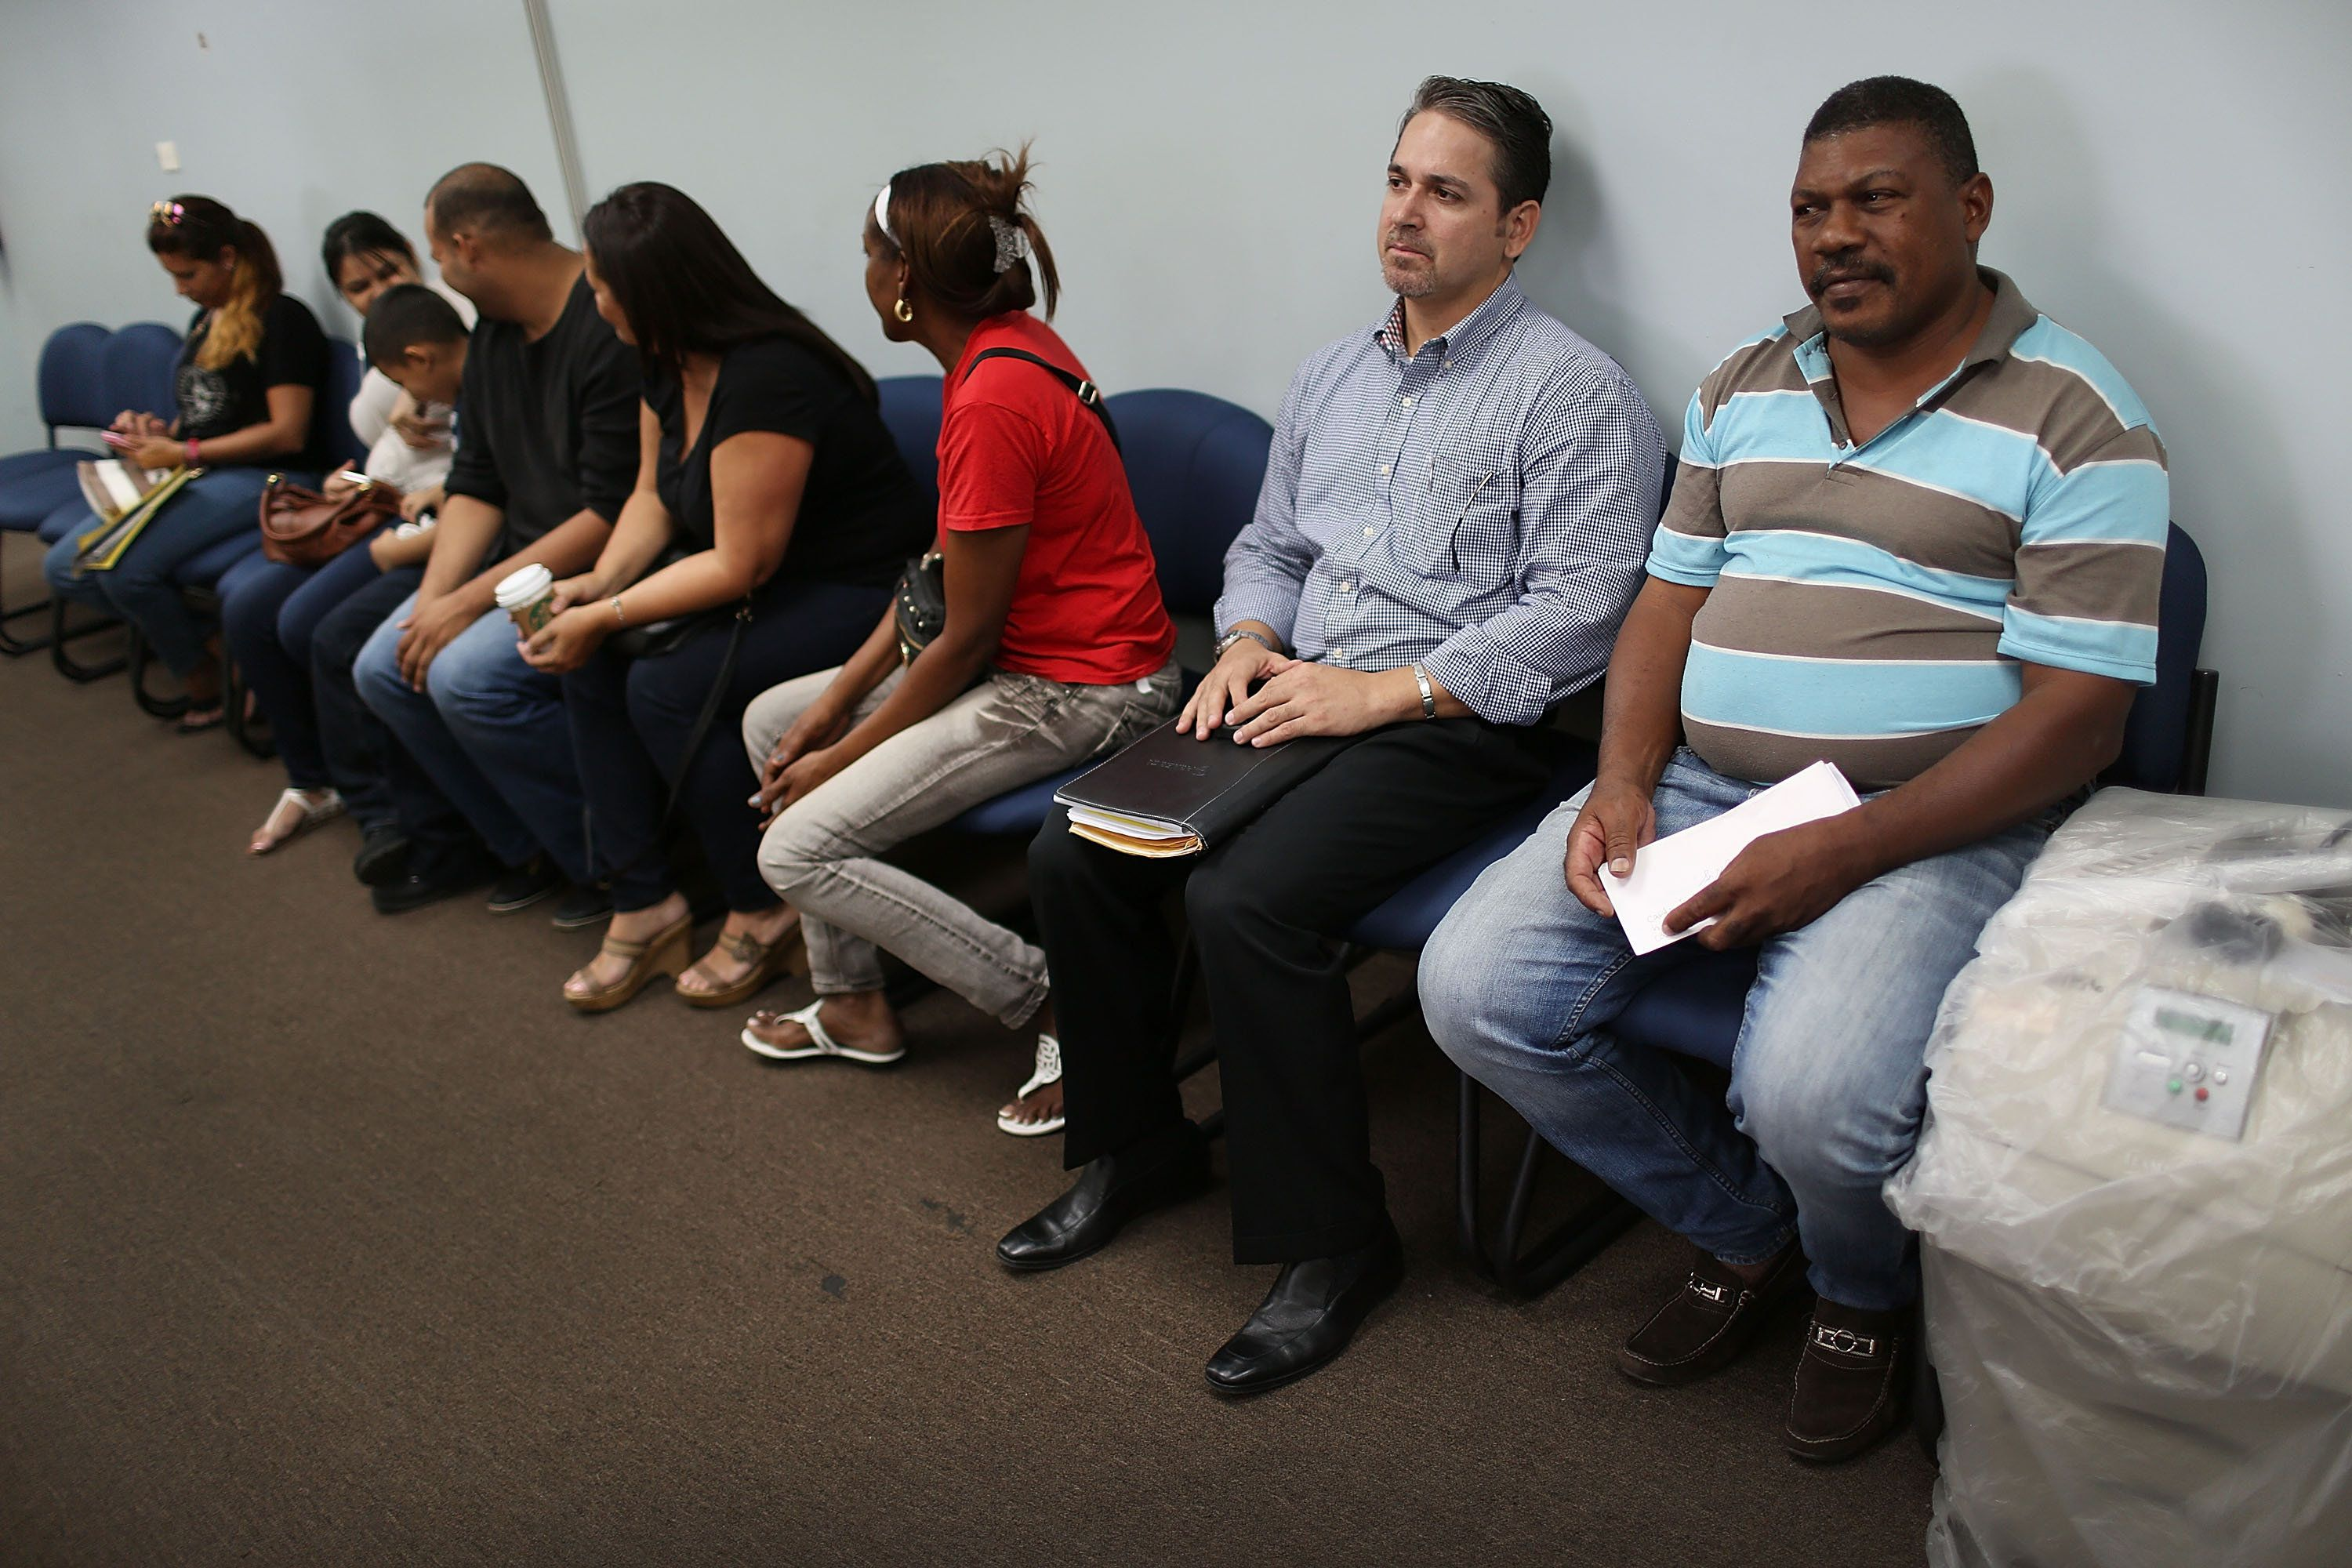 SAN JUAN, PUERTO RICO - JUNE 30:   Rolando Santiago (2nd R), who lost his job at pharmacutical company, along with other people wait for help at an unemployment office a day after Puerto Rican Governor Alejandro Garcia Padilla gave a televised speech regarding the governments $72 billion debt on June 30, 2015 in San Juan, Puerto Rico.  The Governor said in his speech that the people will have to sacrifice and share in the responsibilities for pulling the island out of debt.  (Photo by Joe Raedle/Getty Images)